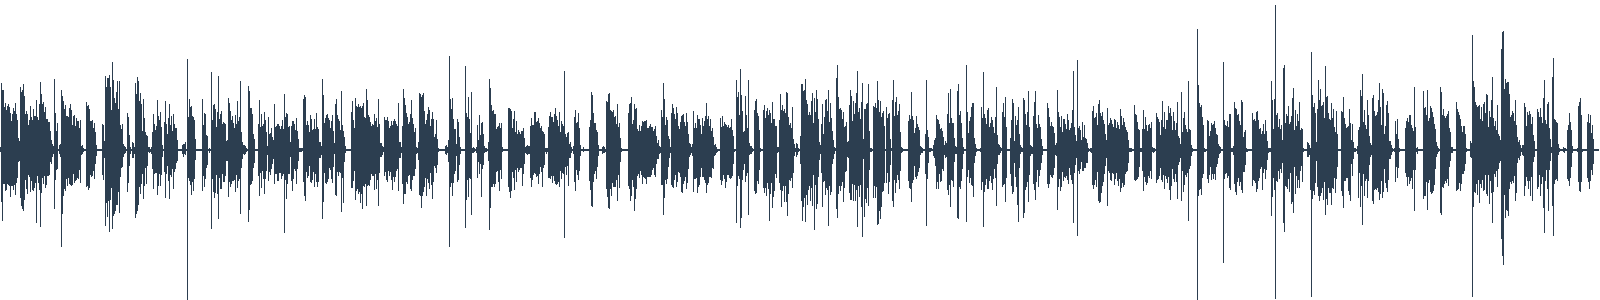 Vdova waveform